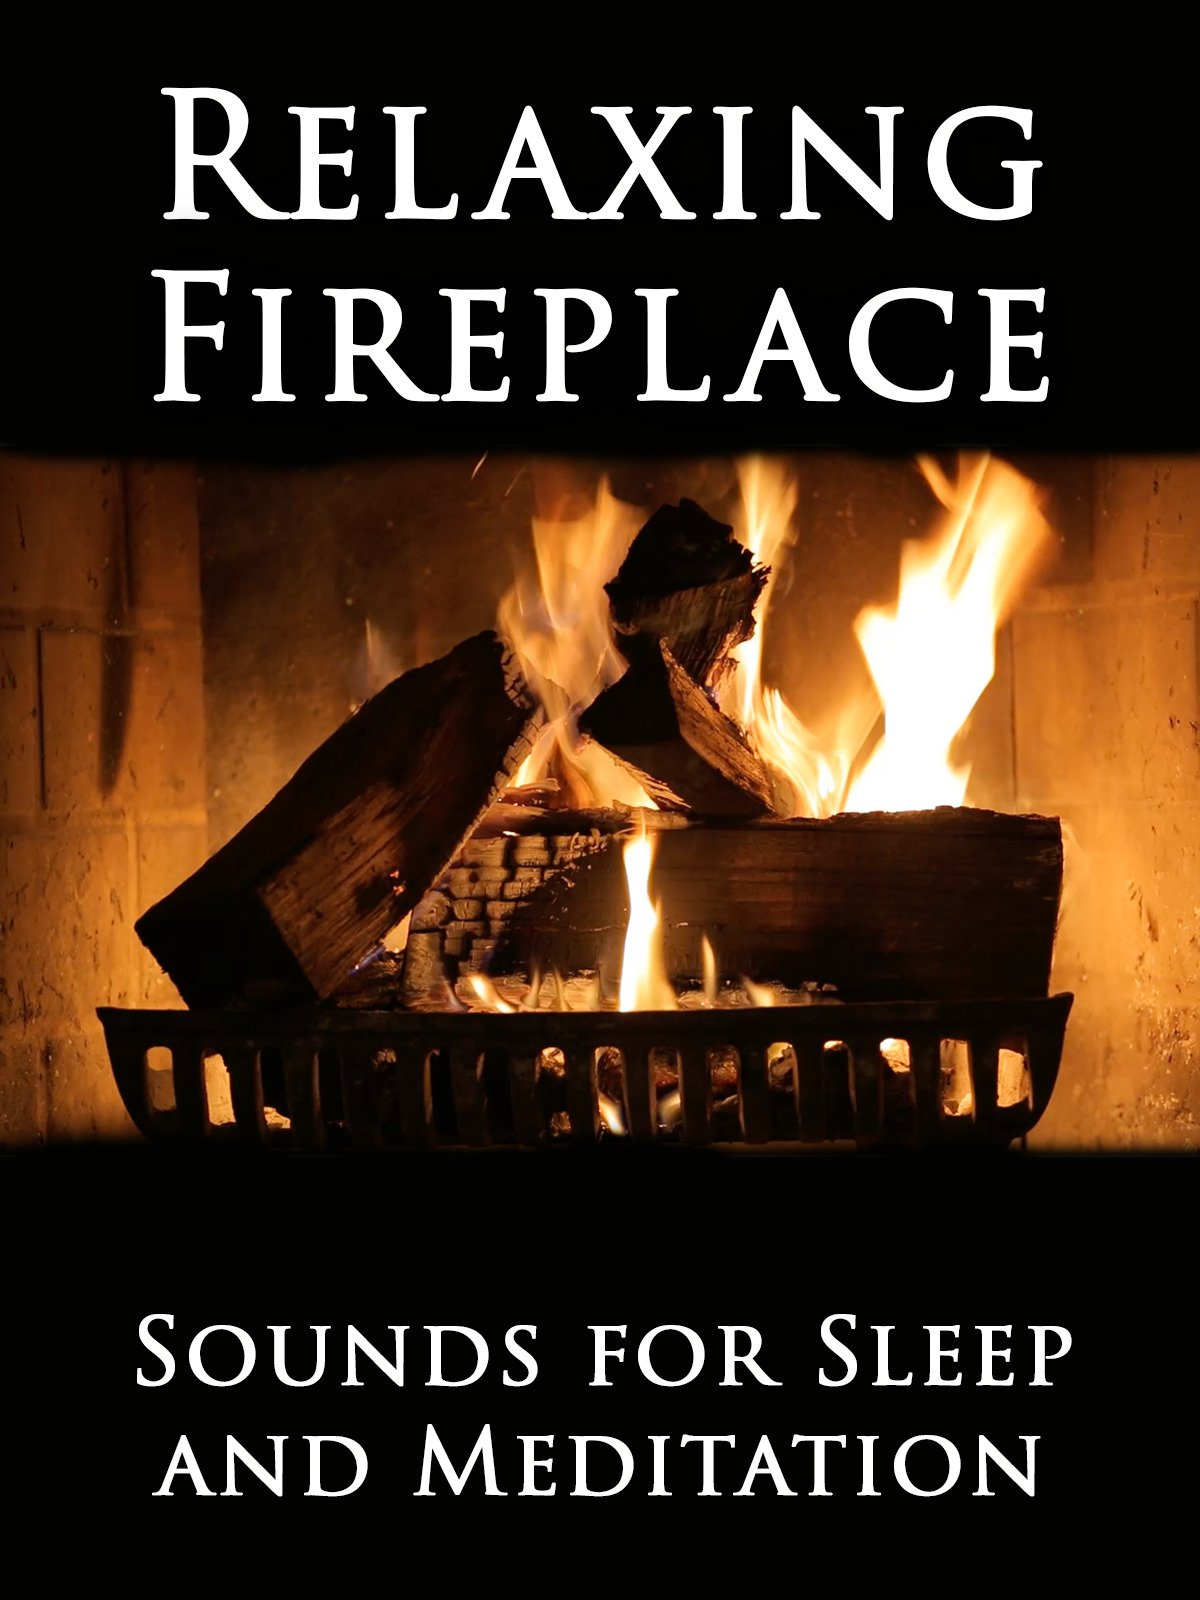 Fireplace Sounds Watch Relaxing Fireplace Sounds For Sleep And Meditation On